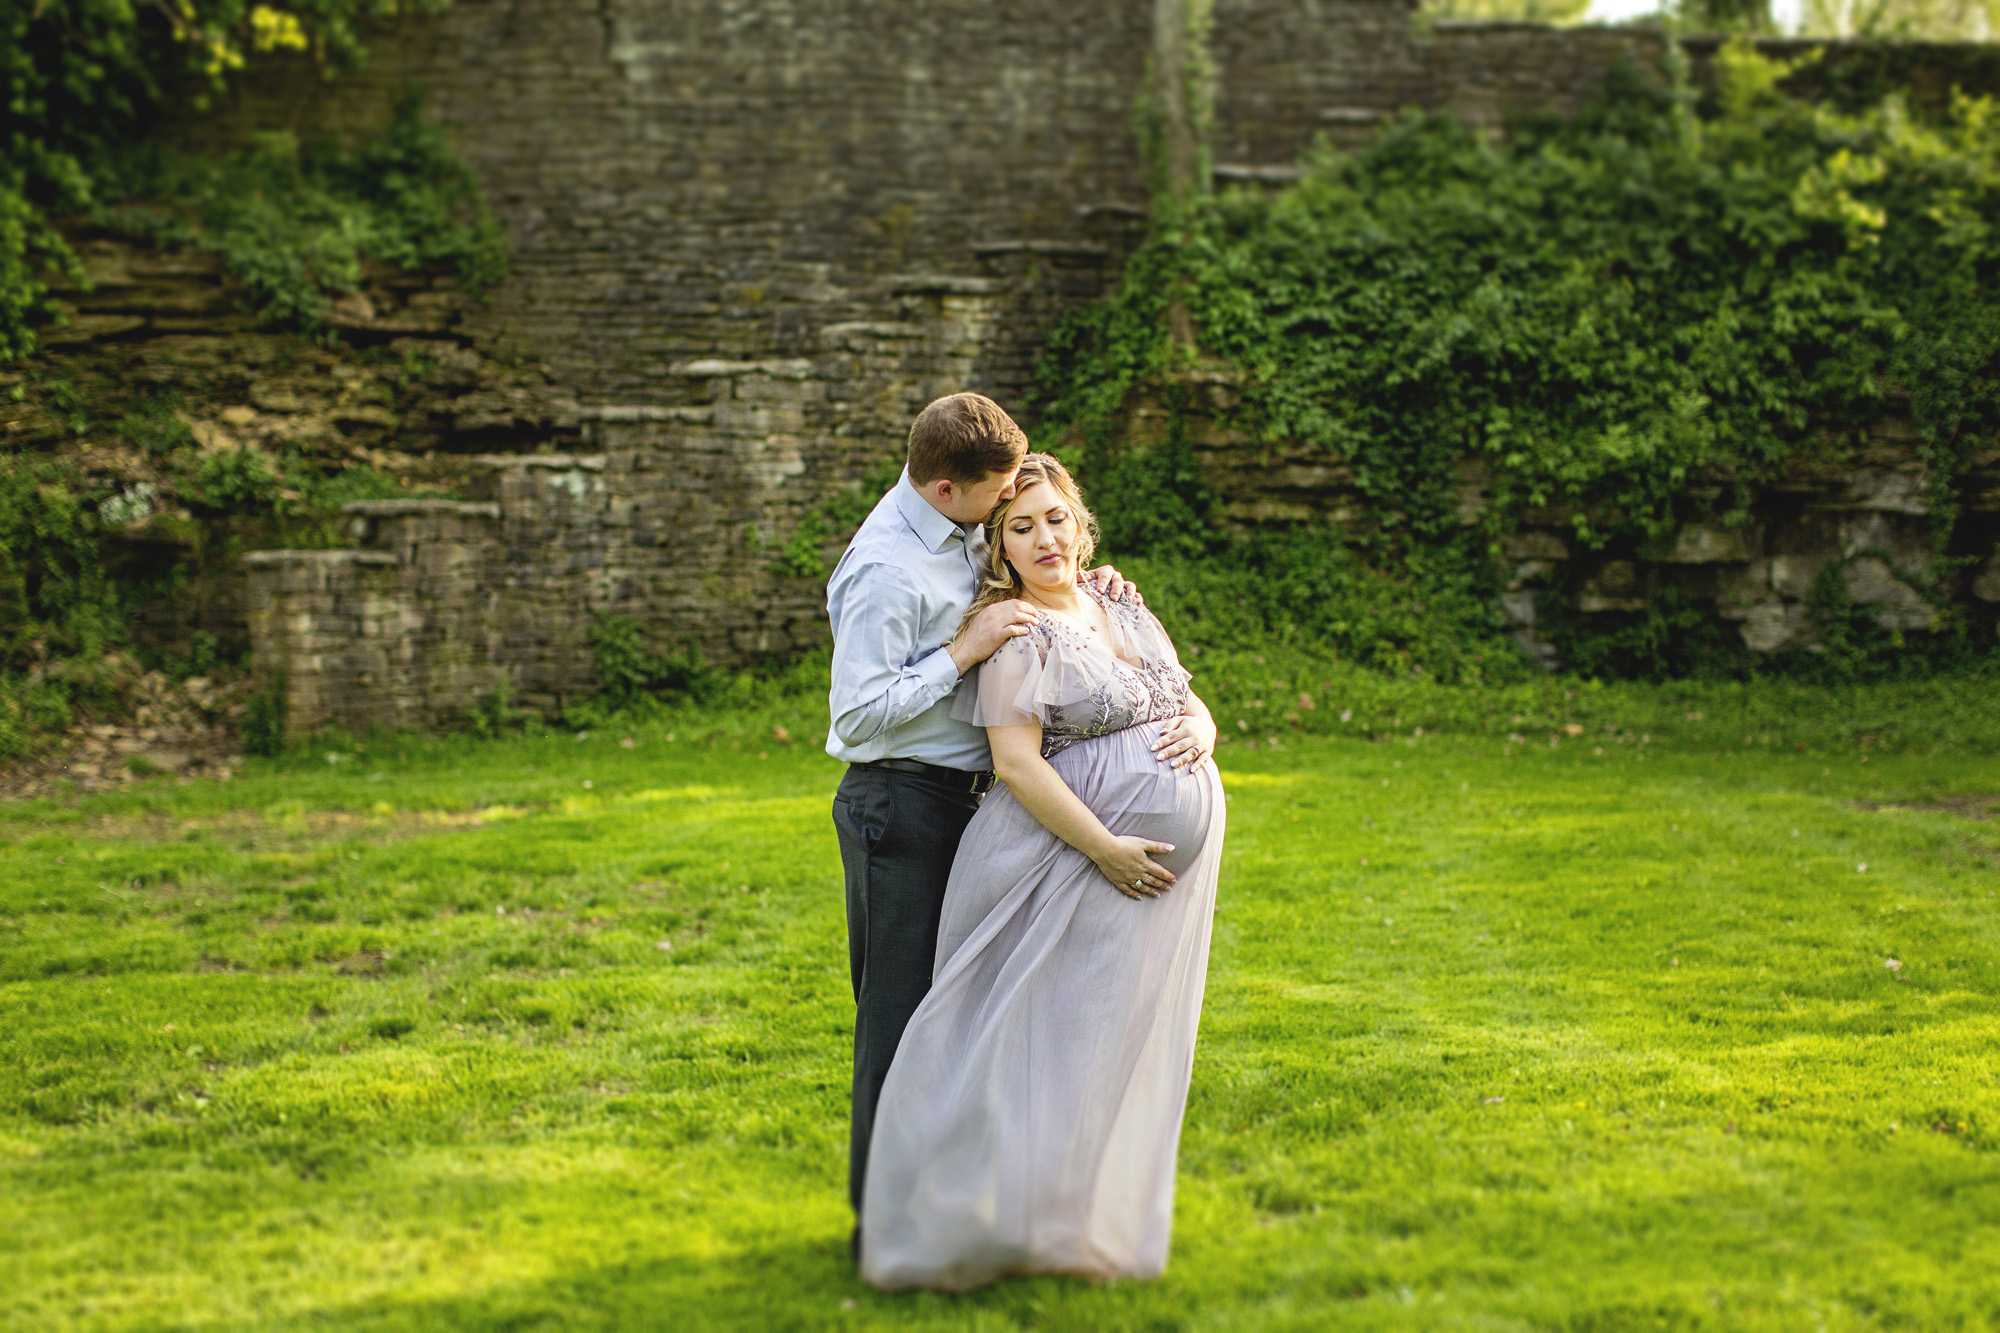 Seriously_Sabrina_Photography_Lexington_Kentucky_Fairytale_Maternity_Portraits_Horse_Park_Reynolds_17.jpg